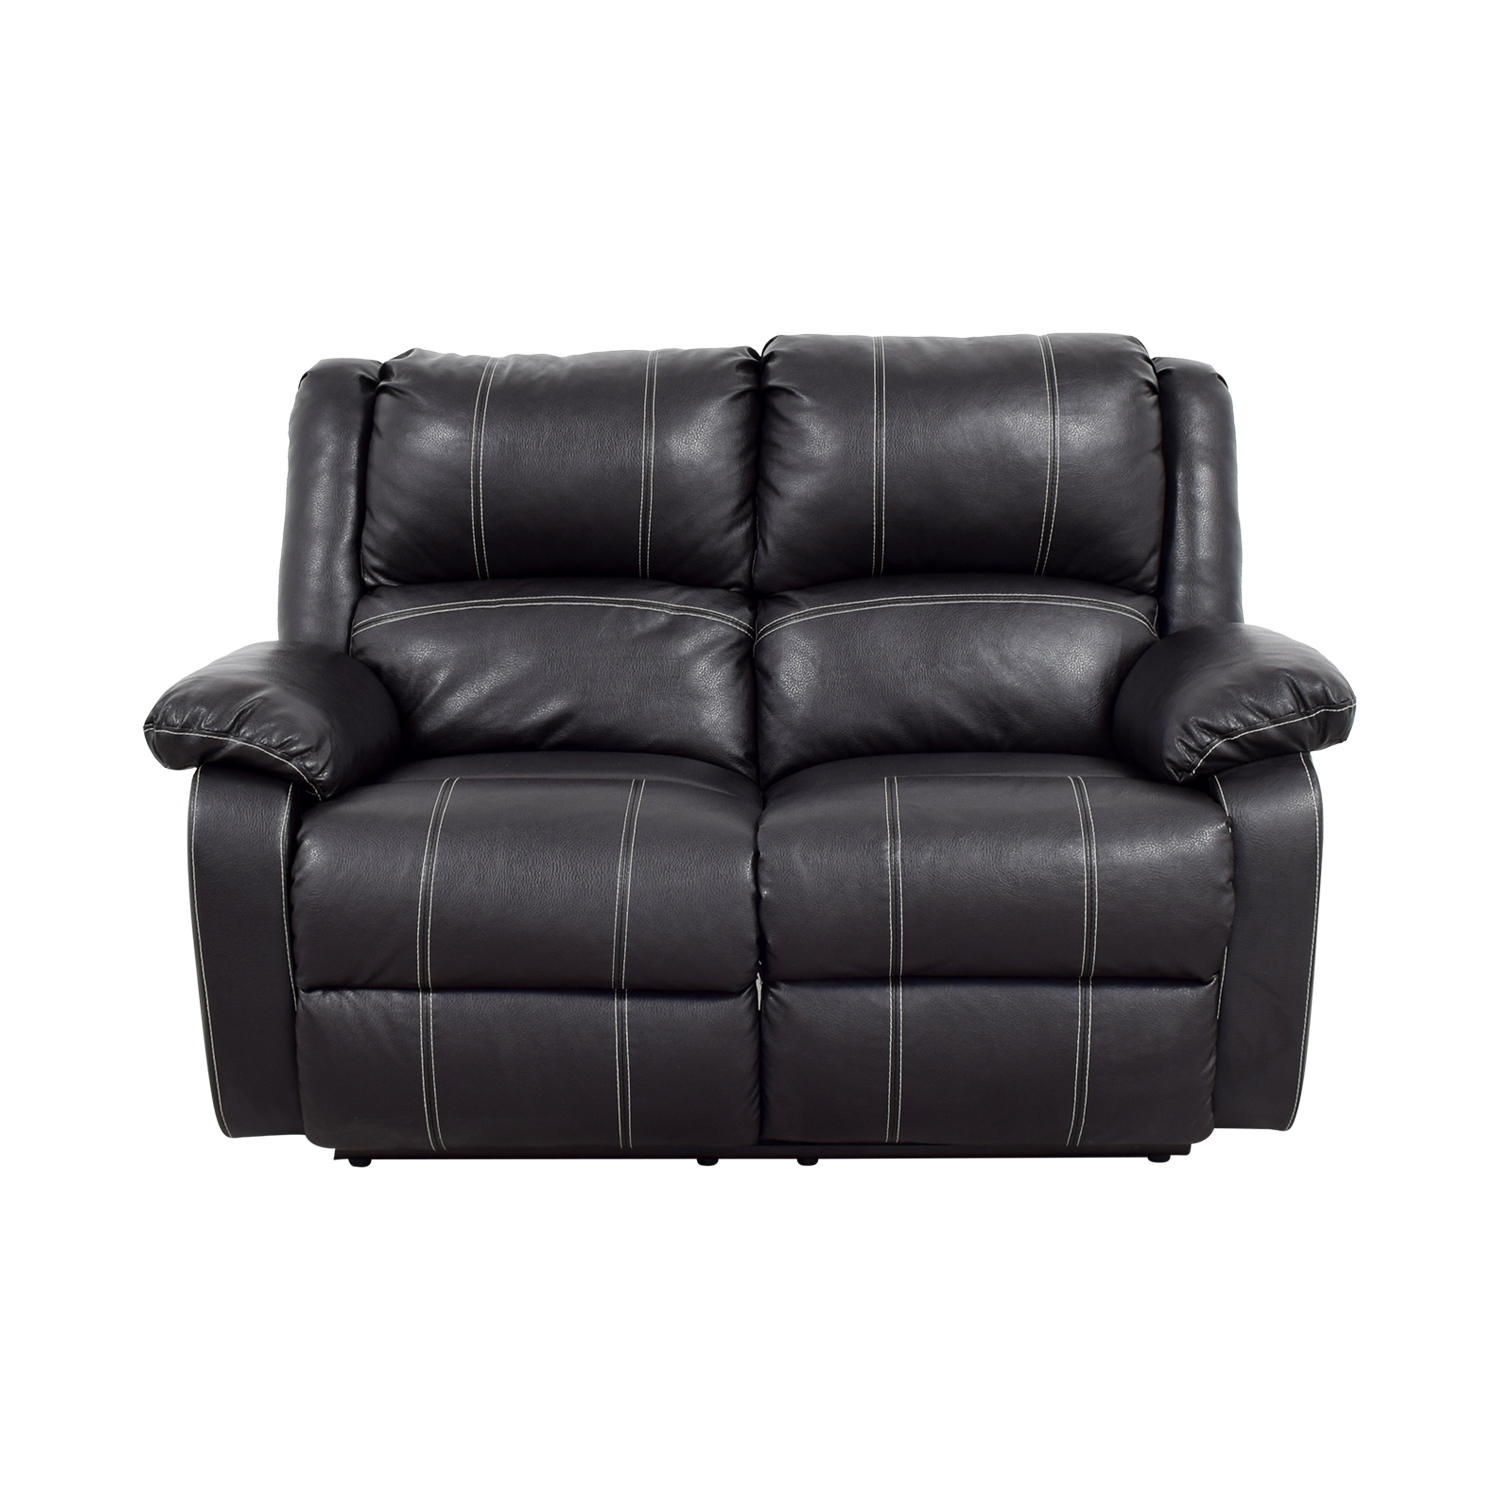 shop Acme Acme Black Leather Reclining Loveseat online